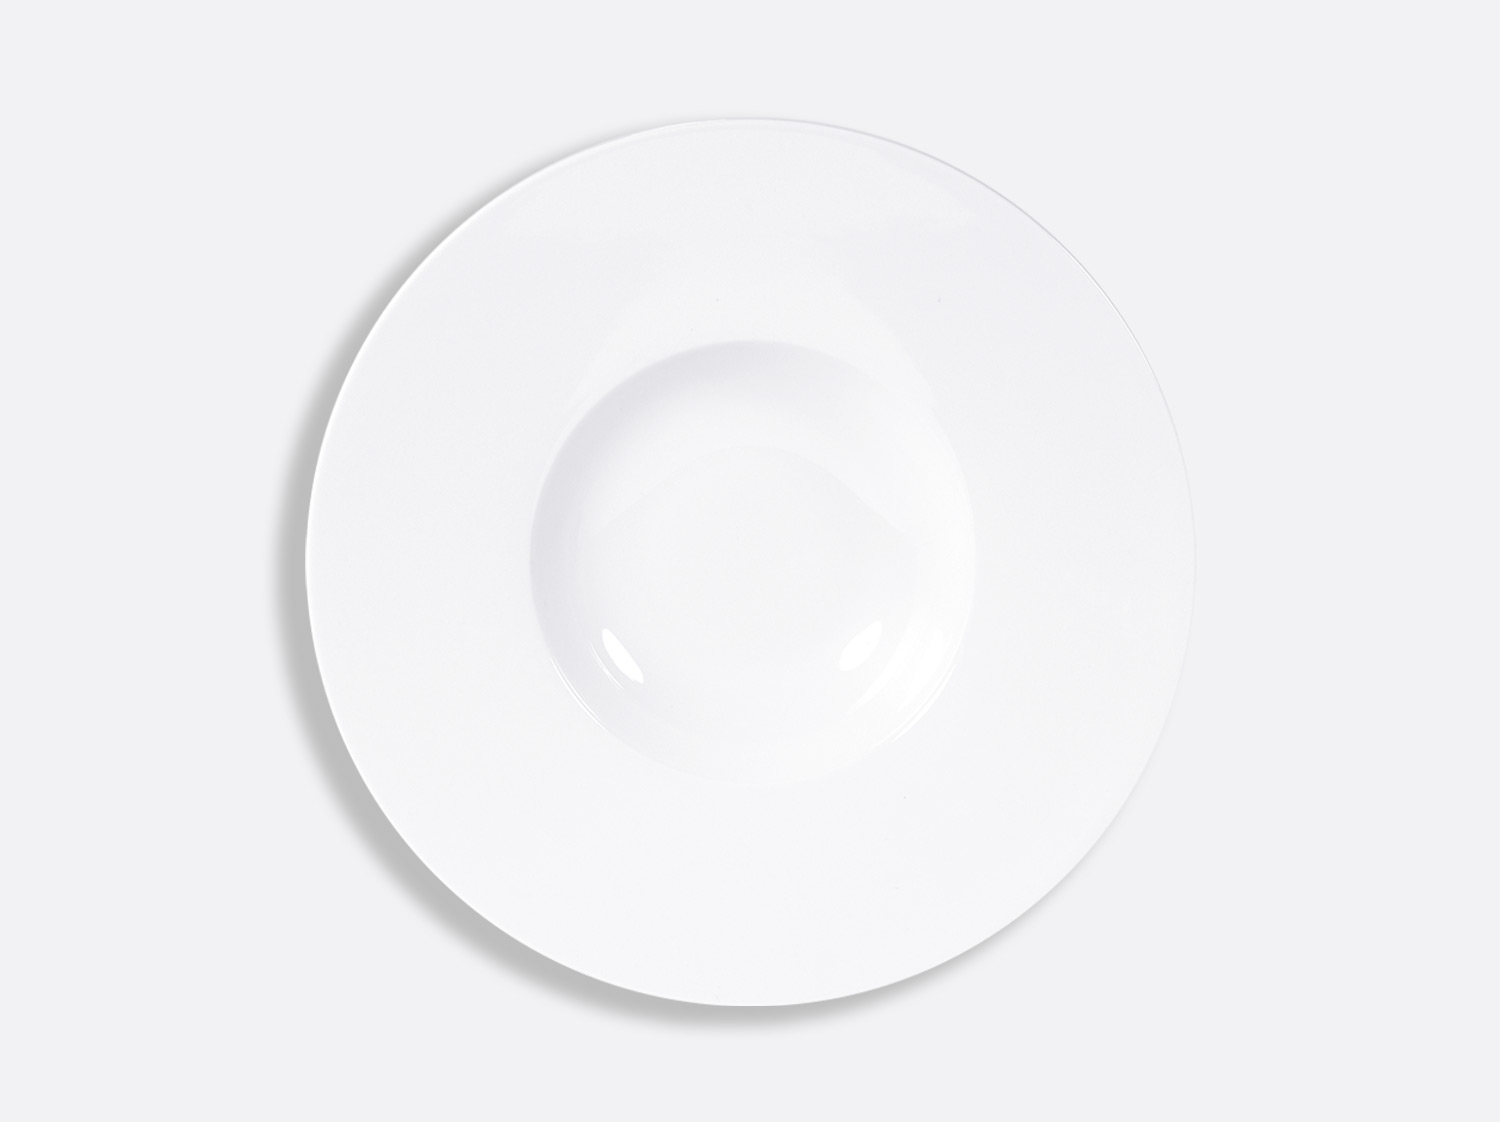 Assiette creuse à aile large 27 cm en porcelaine de la collection FUSION BLANC Bernardaud